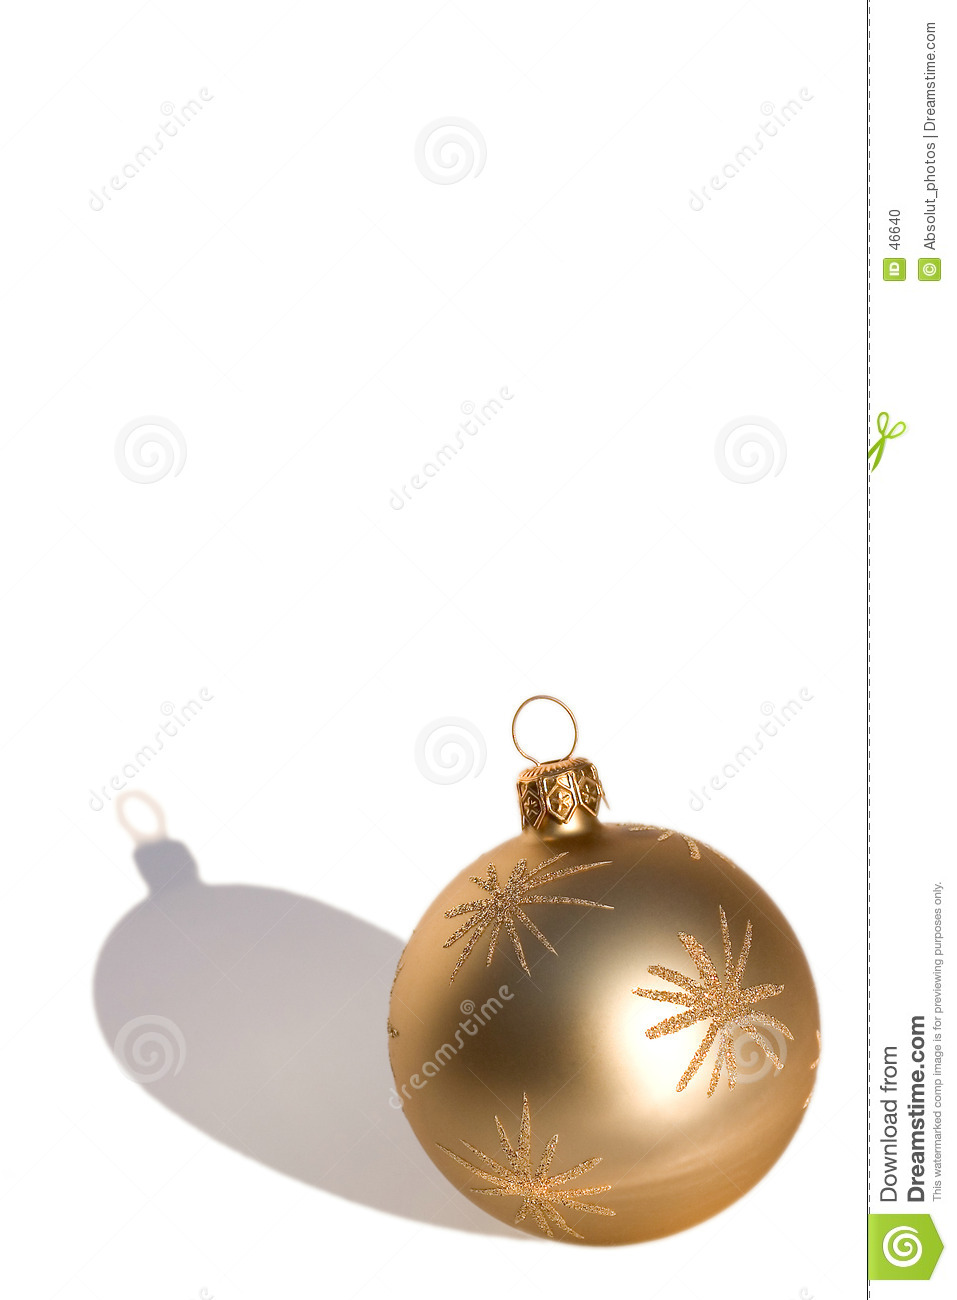 Bauble do ouro